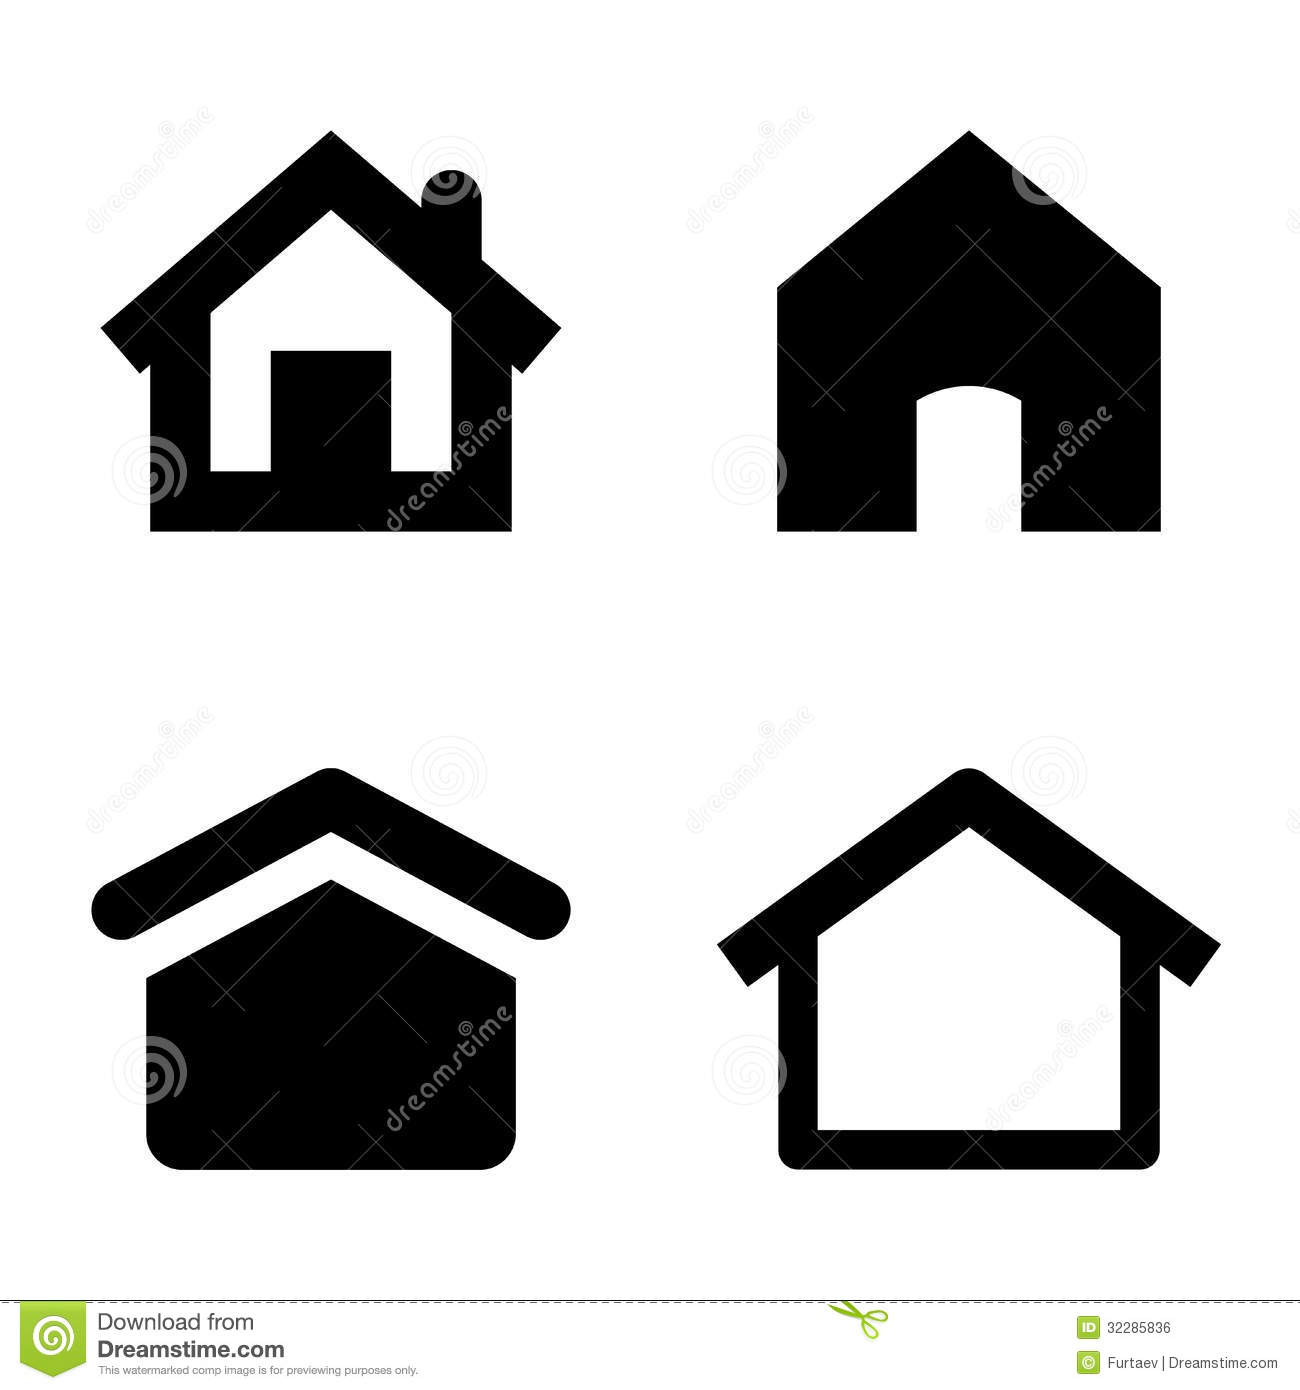 8c6bcccba10b Home icons stock vector. Illustration of construction - 32285836